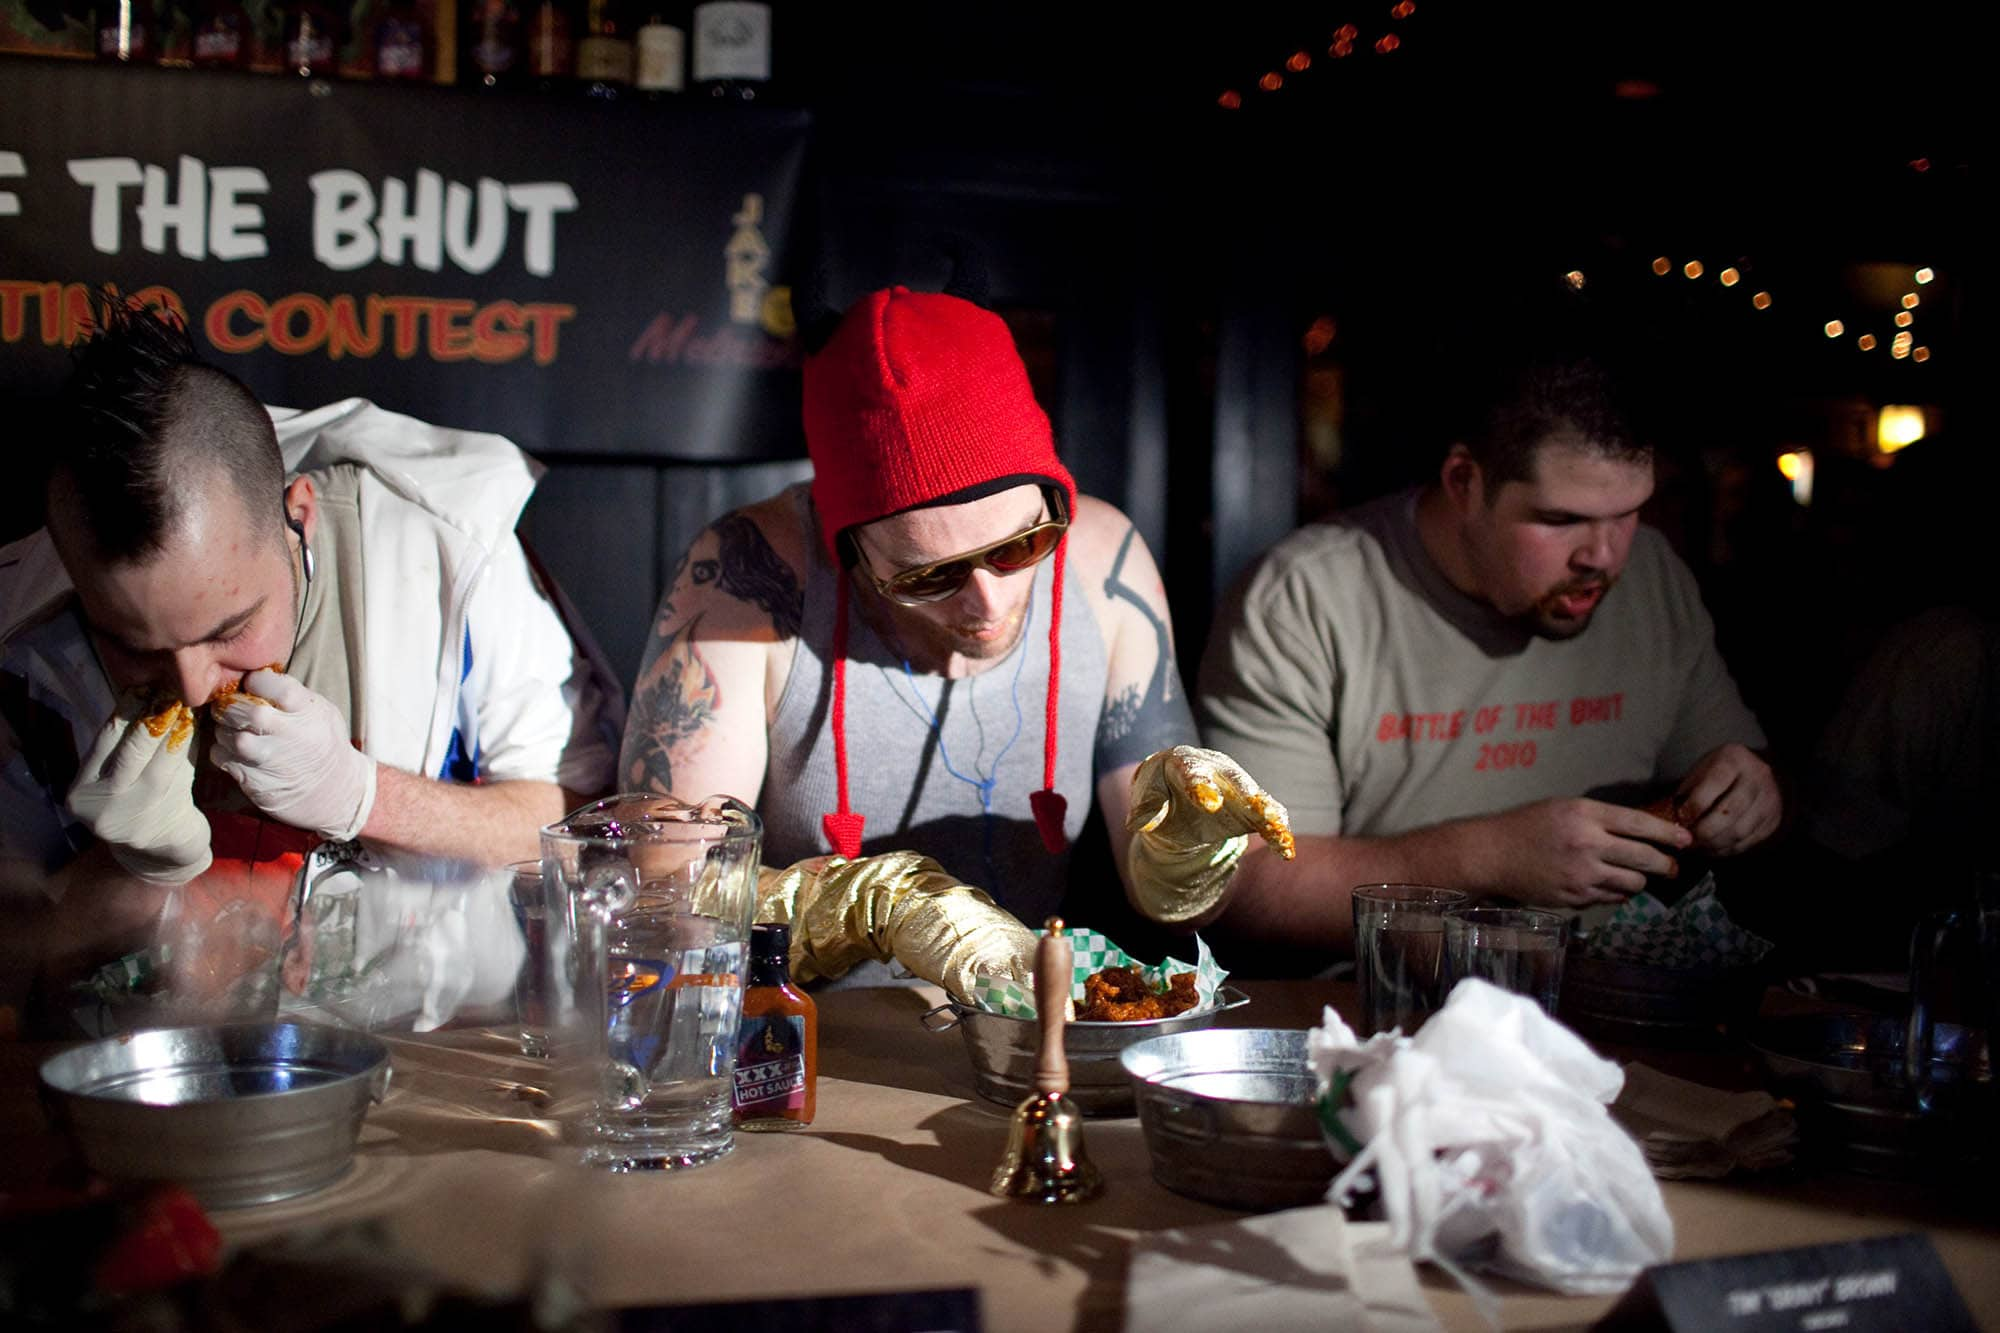 Battle of the Bhut XXX Wing Eating Contest in Chicago, Illinois.